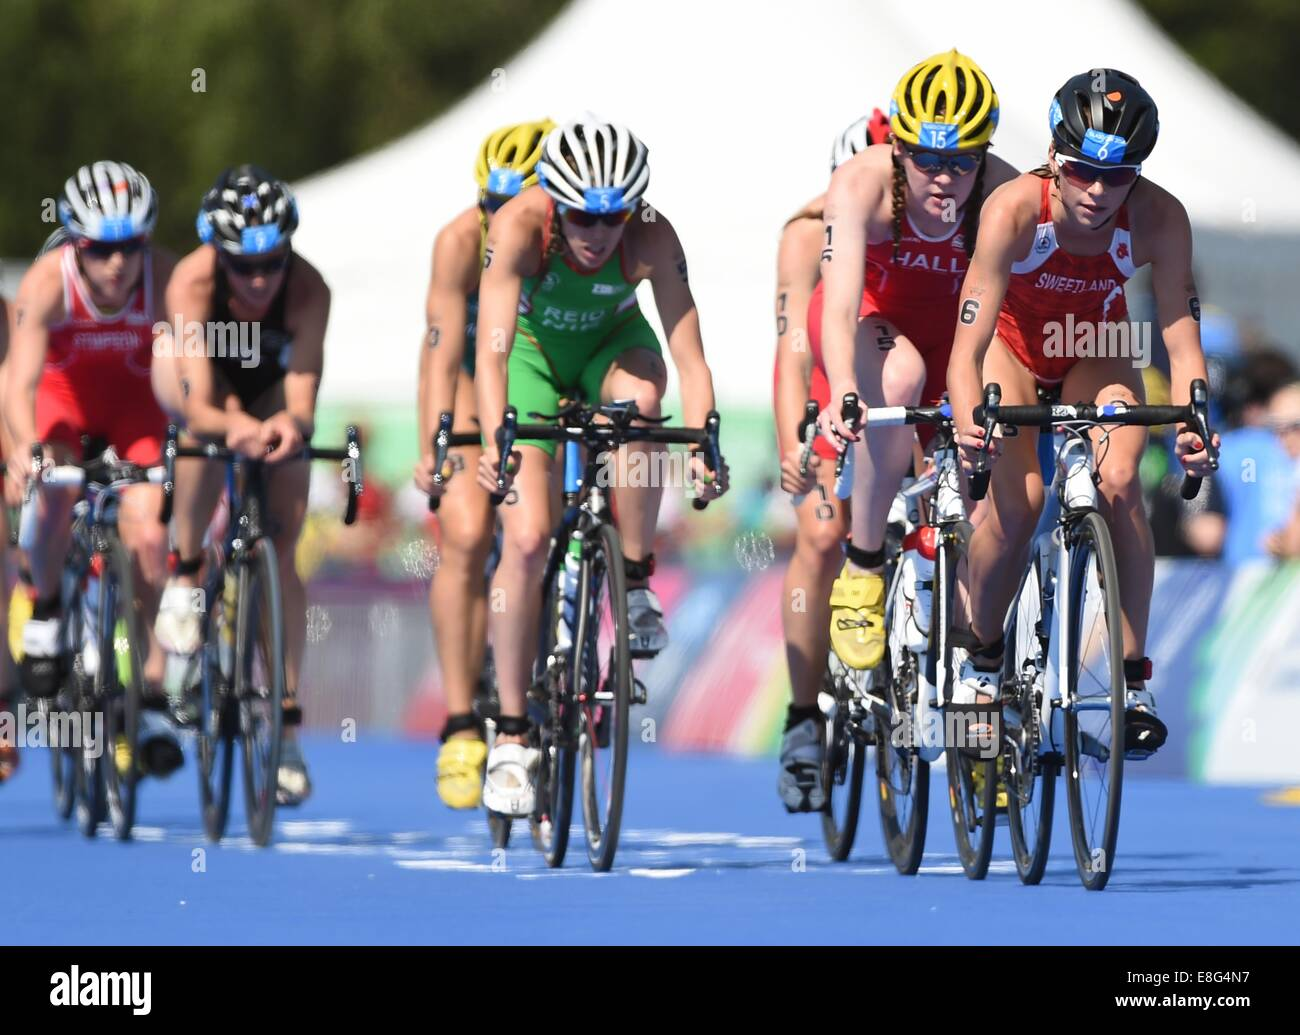 Kirsten Sweetland (CAN ) leads the peleton in the Women's Triathlon. Triathlon. Strathclyde Country Park, Glasgow, - Stock Image